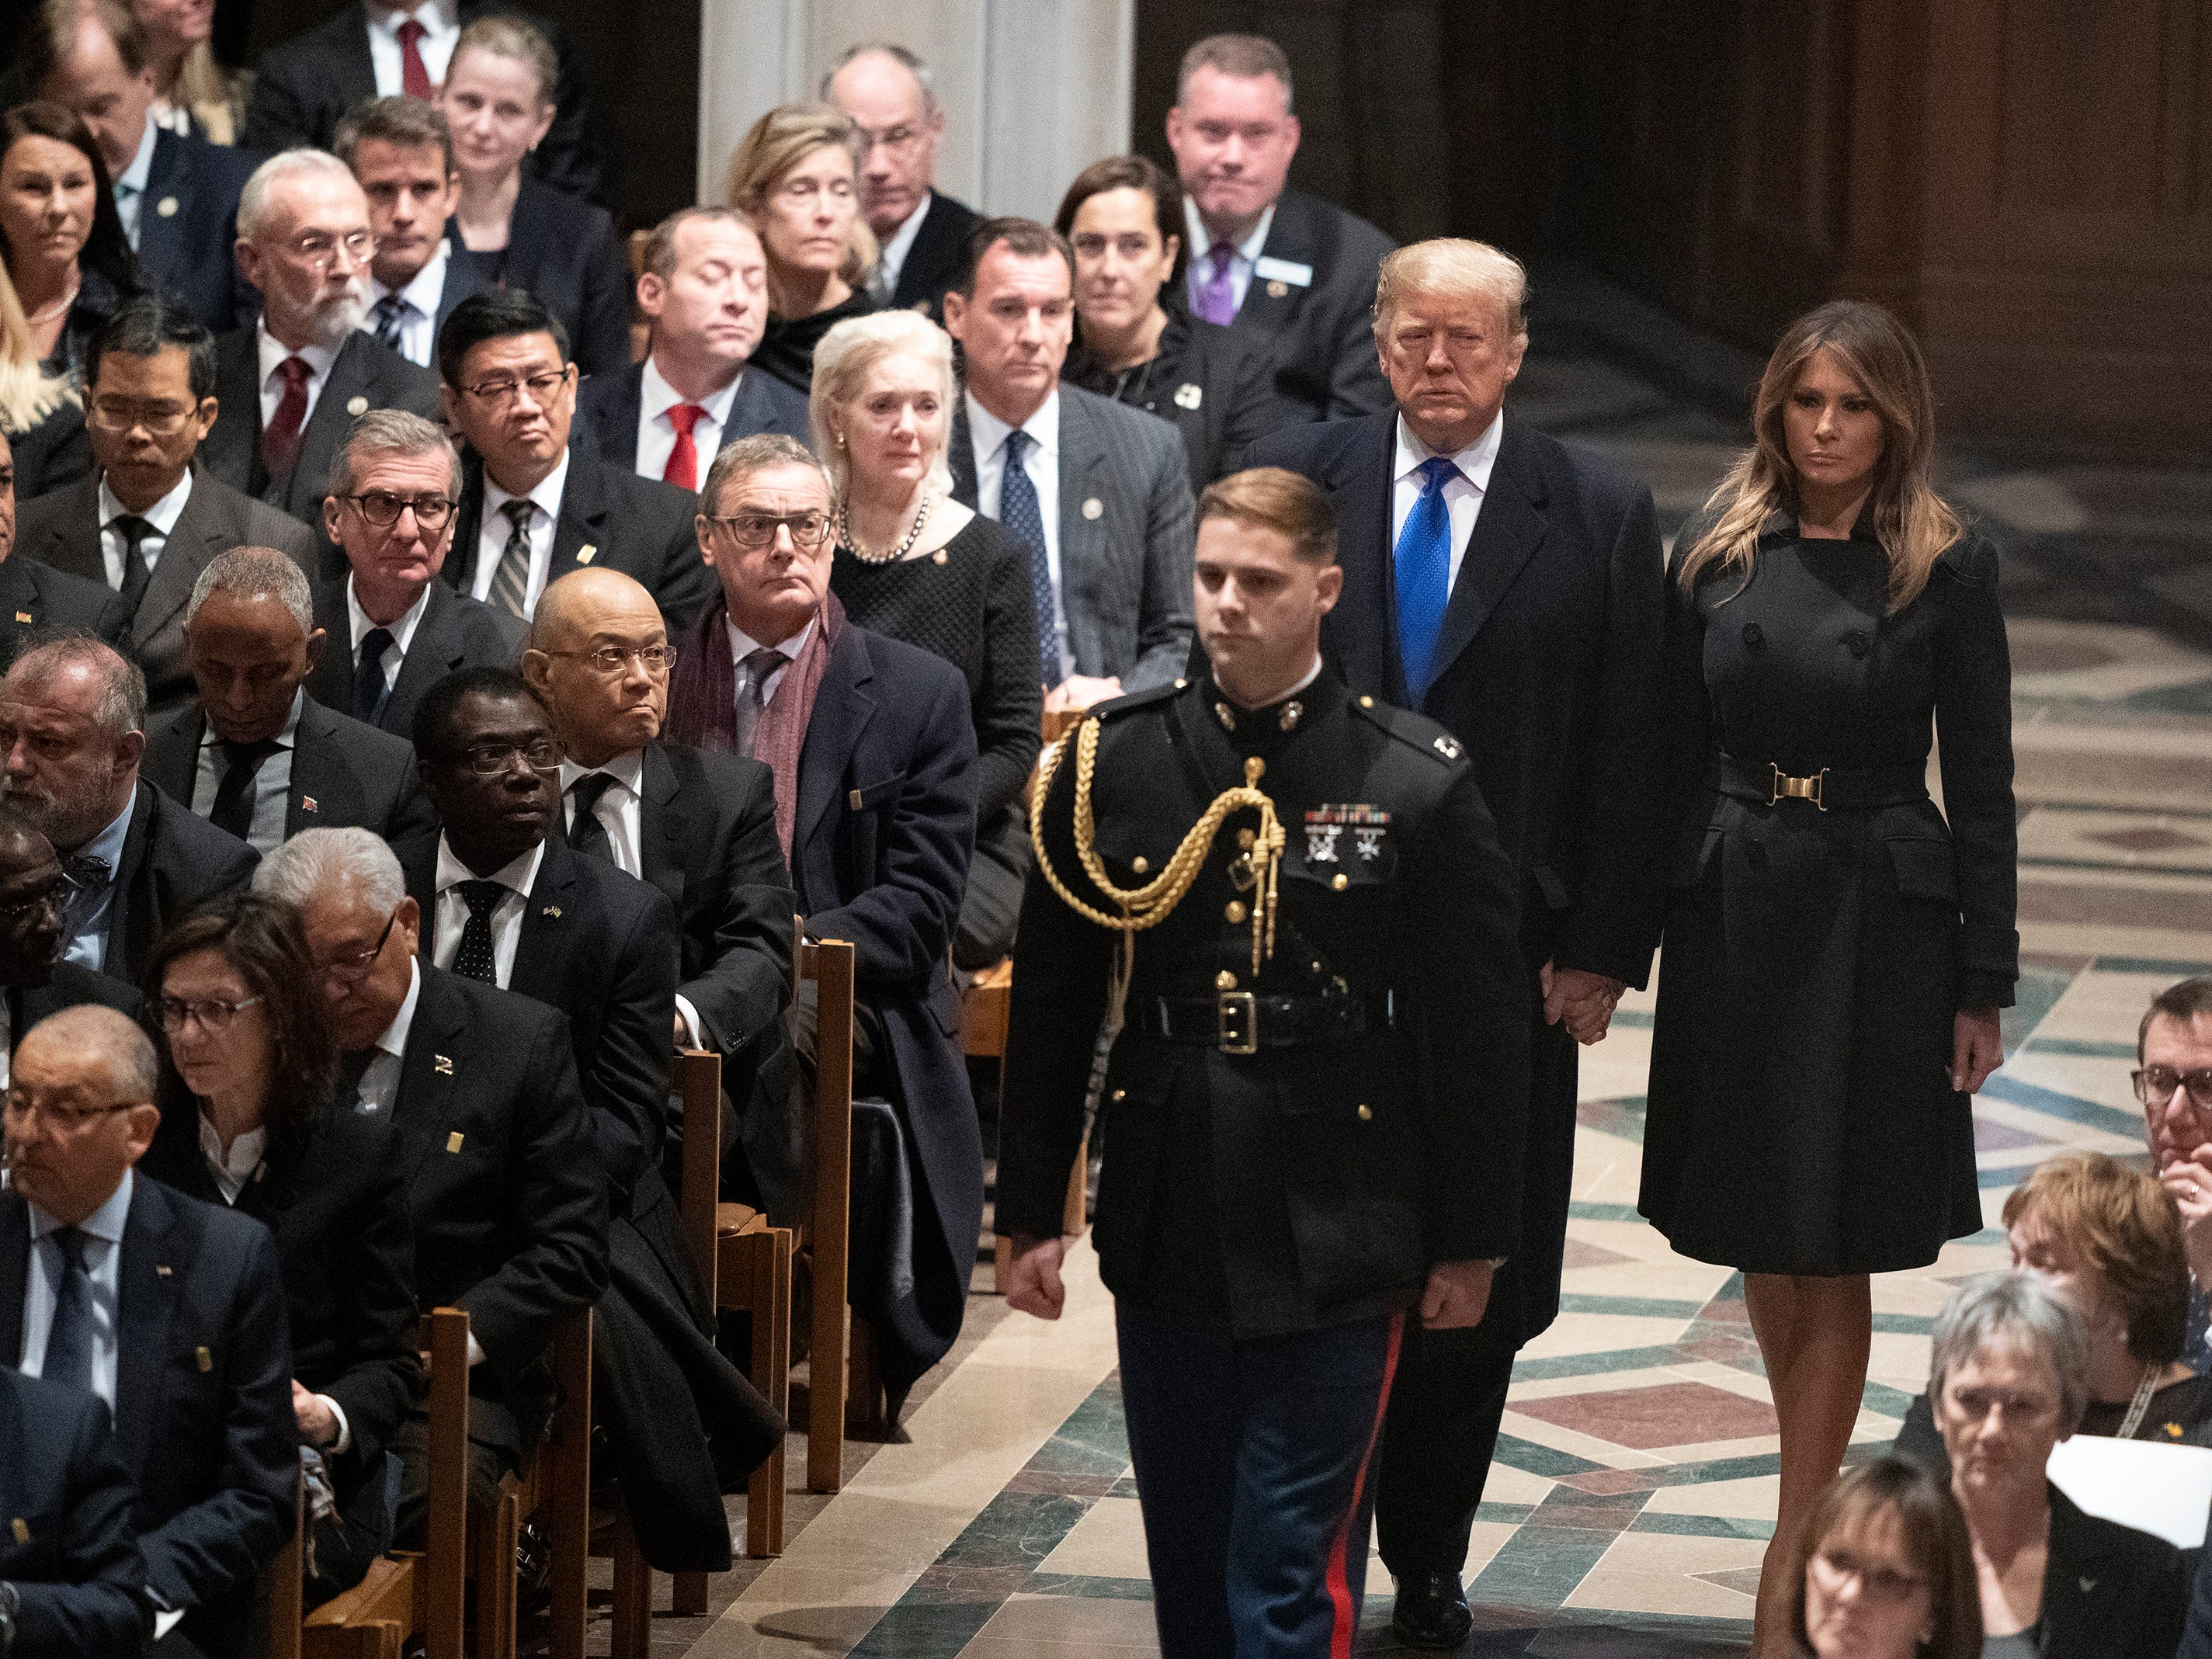 President Donald Trump and first lady Melania Trump arrive for the State Funeral for former President George H.W. Bush at the Washington National Cathedral in Washington, Wednesday, Dec. 5, 2018.